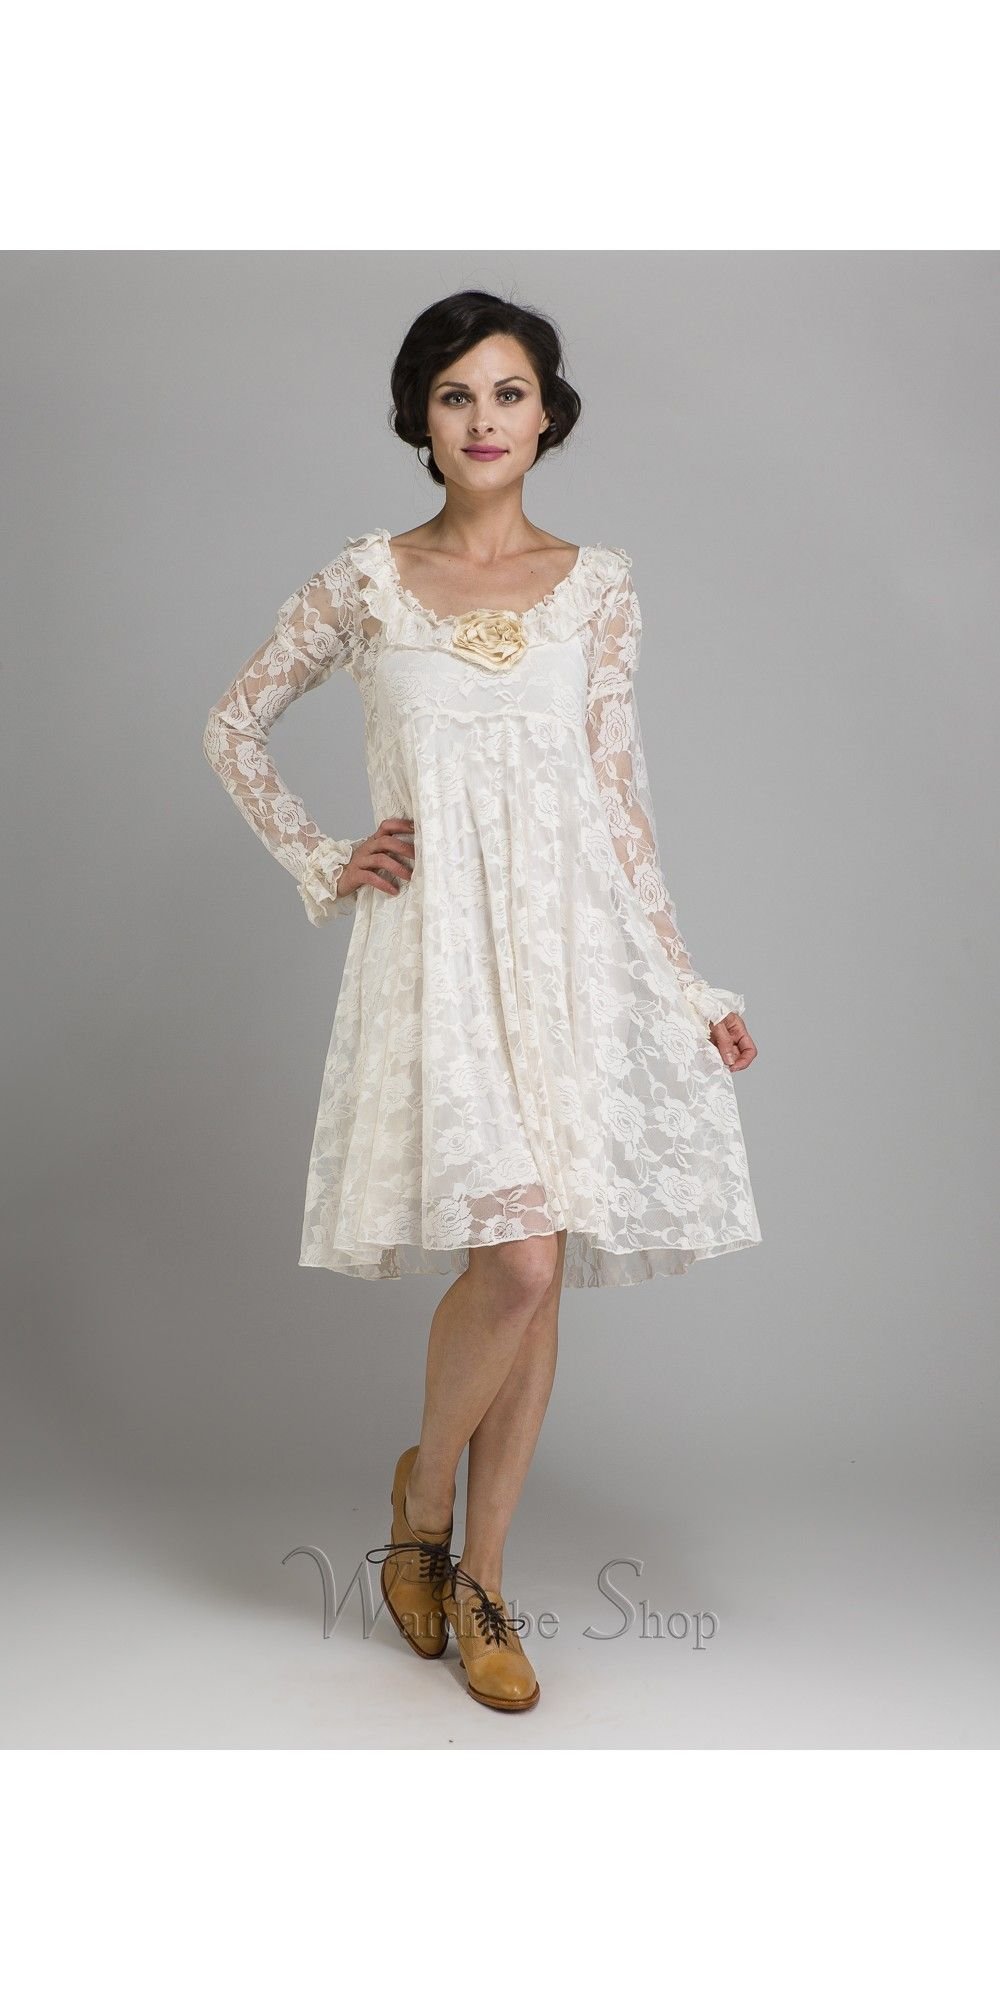 62433ea5fd5 This long-sleeved lace Camelot Romantic Flitry Dress by Marrika Nakk mixes  a youthful silhouette with classic elegance